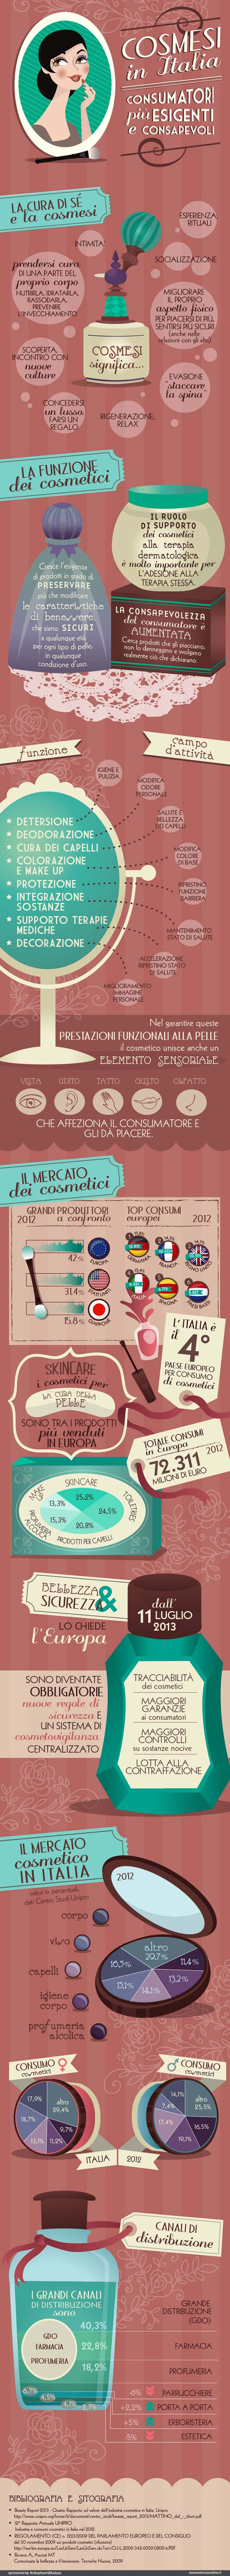 La cosmesi in italia: consumatori più esigenti e consapevoli - infographics designed for esseredonnaonline.it- illustrated by Alice Kle Borghi, kleland.com